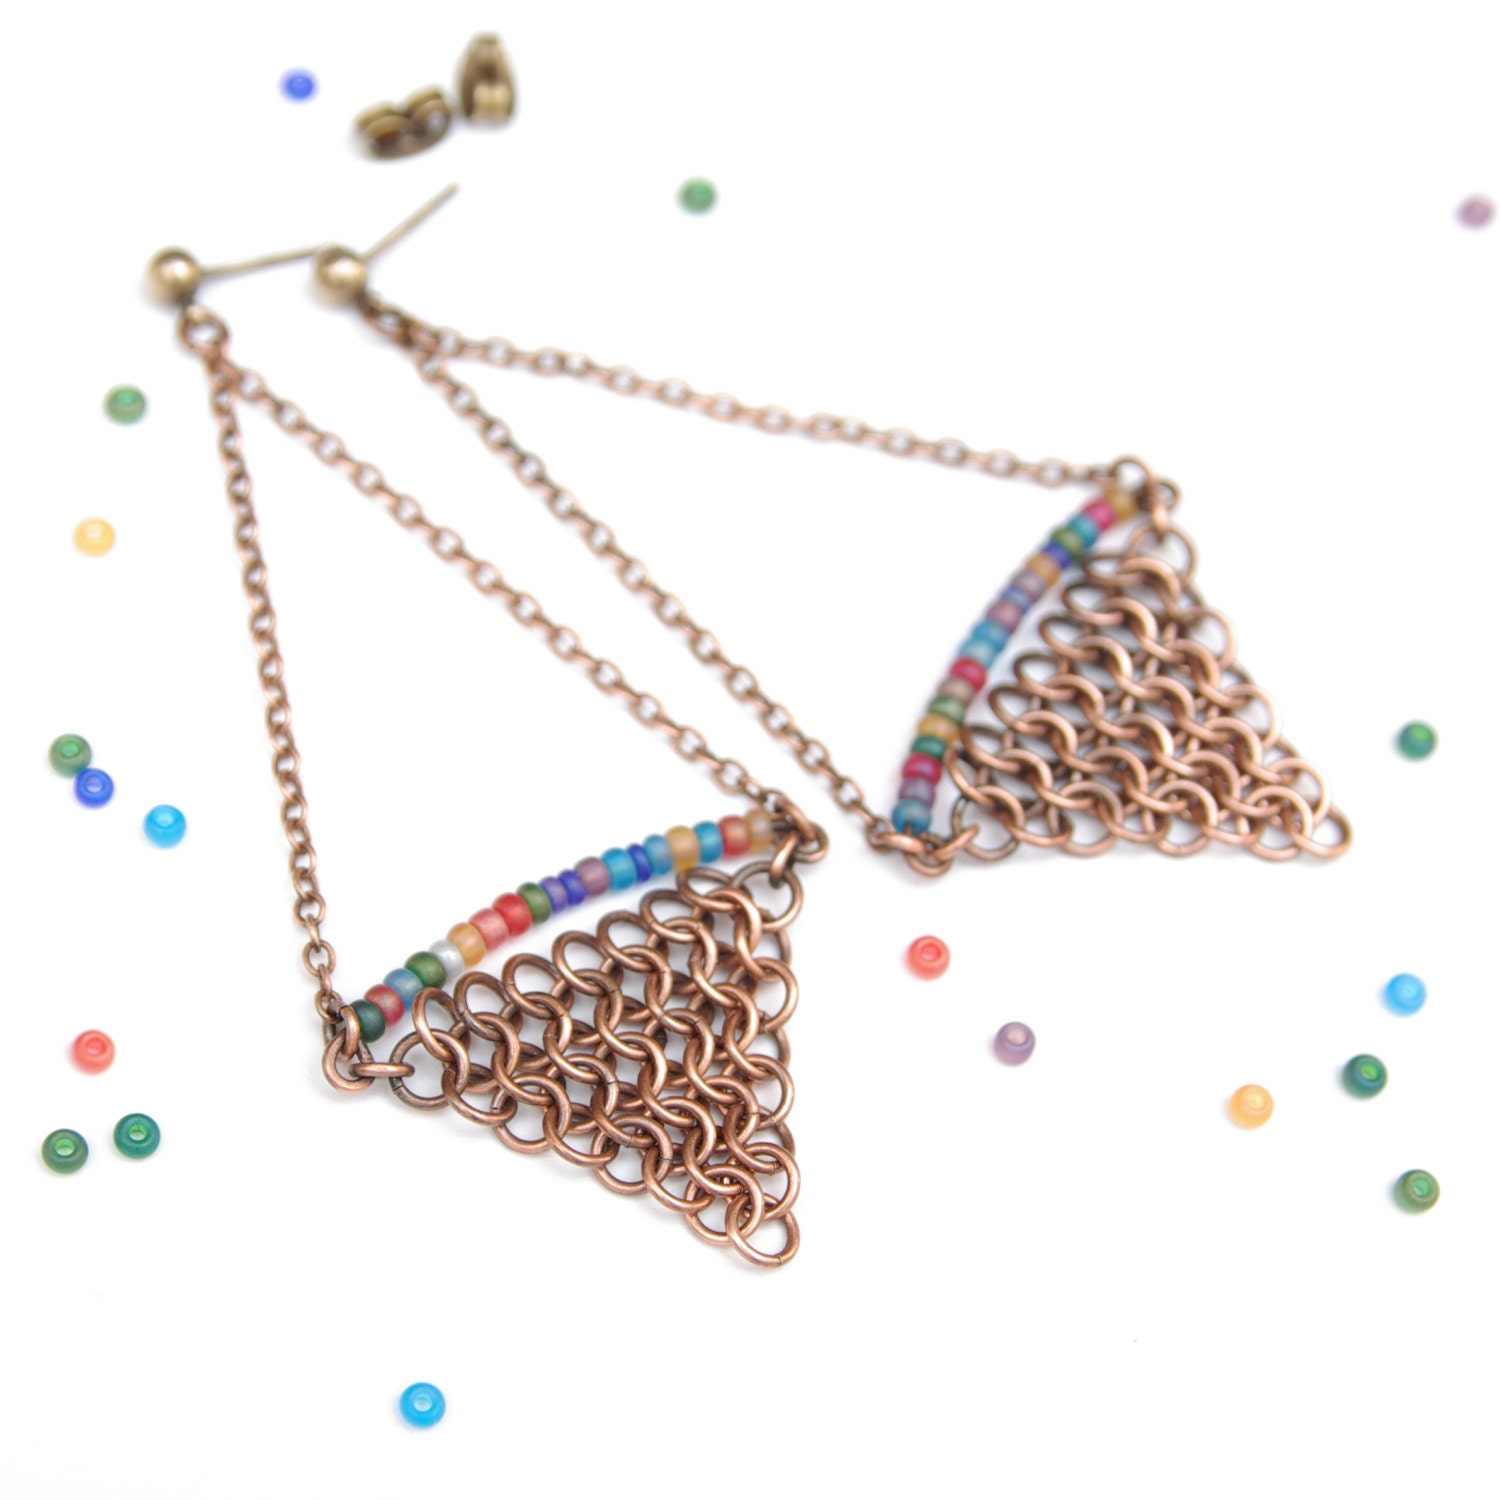 Triangle Earrings: Dangle Earrings / Geometric Jewelry / Chainmaille Triangle